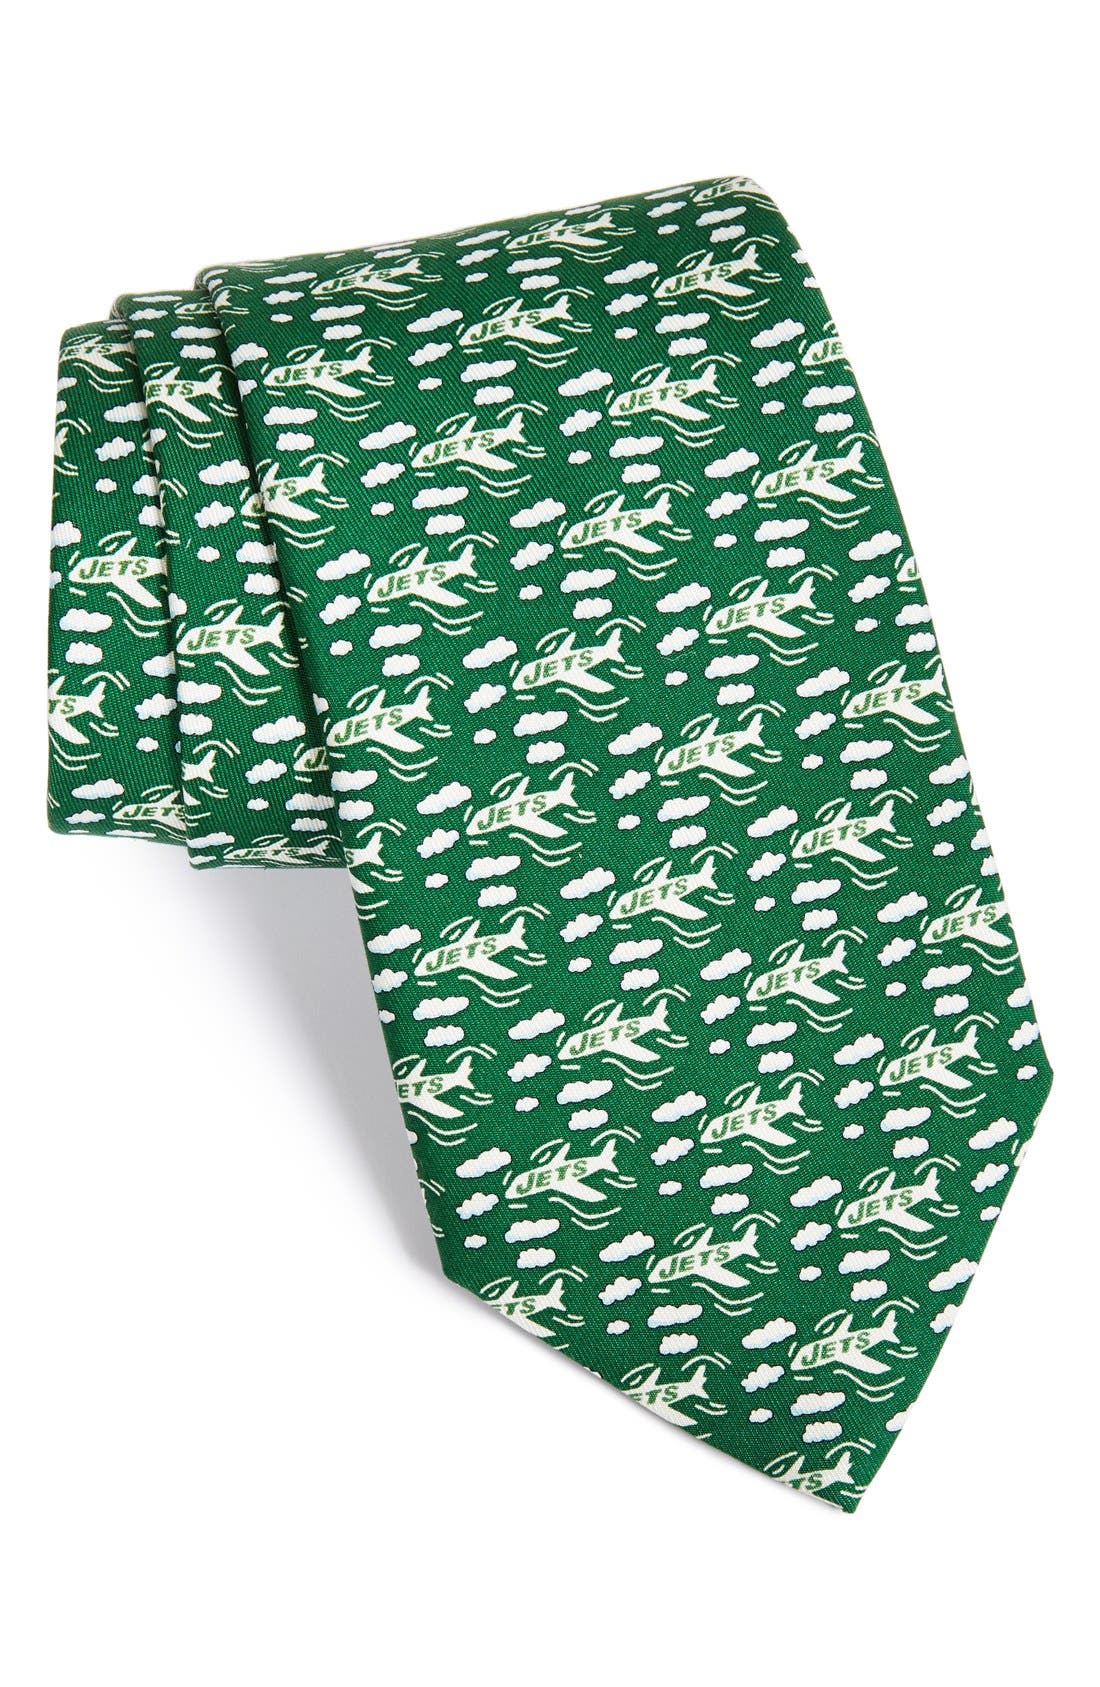 New York Jets - NFL Woven Silk Tie,                         Main,                         color, Green